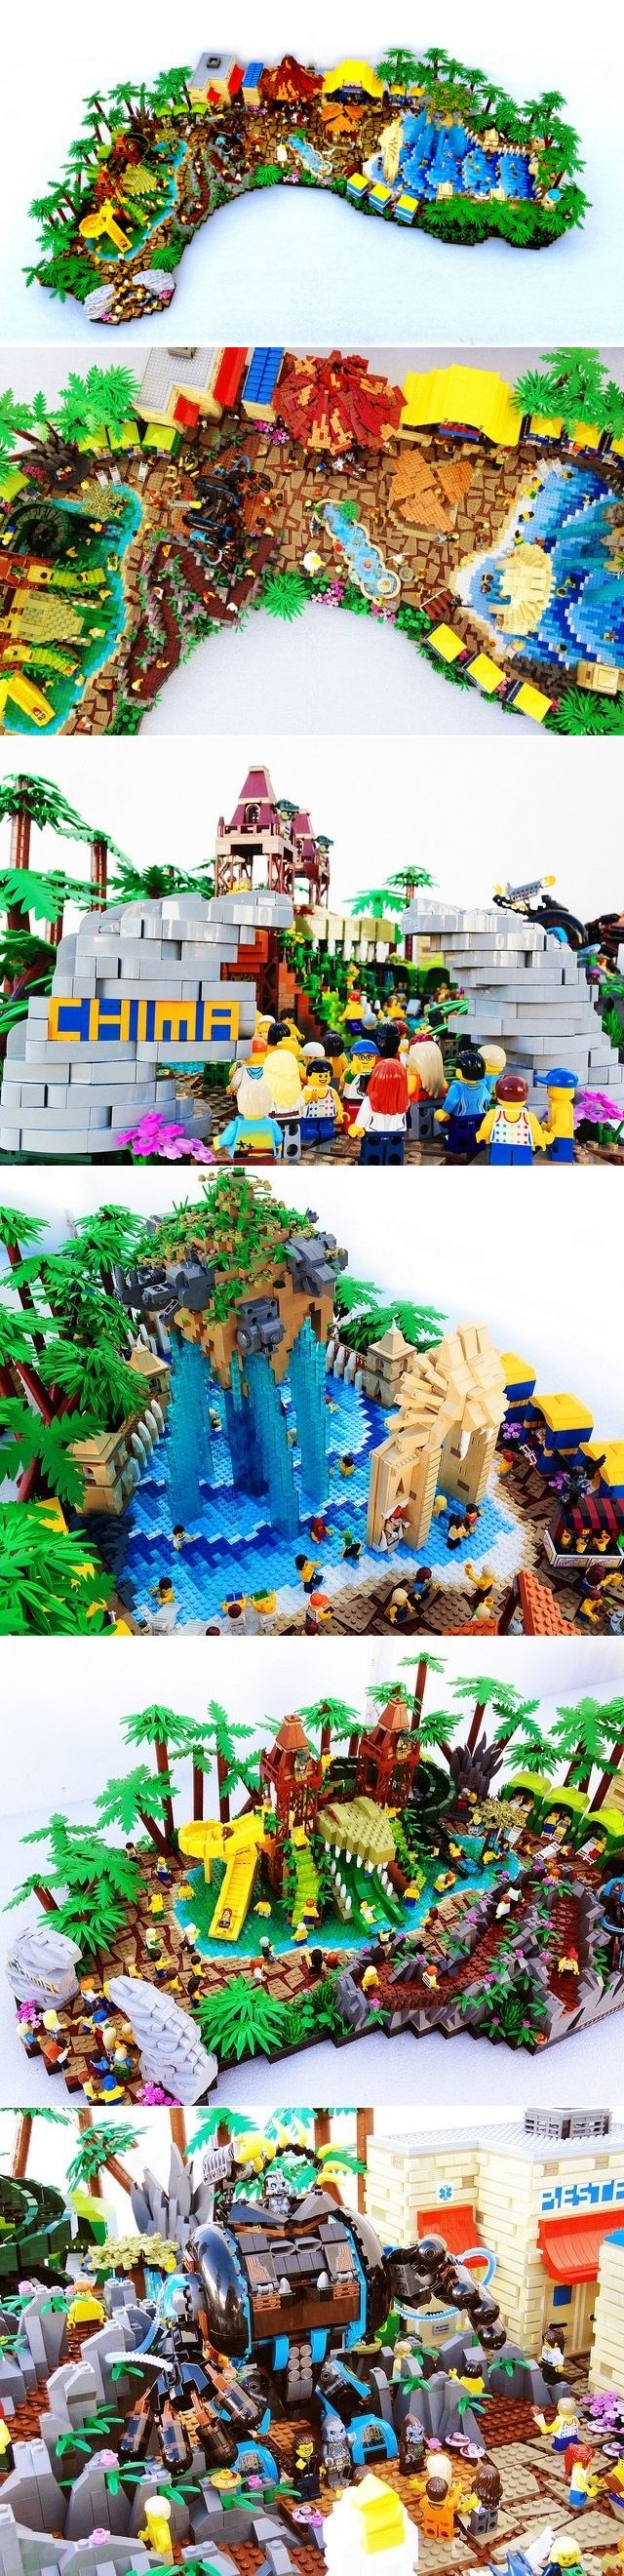 Pin lego 60032 city the lego summer wave in official images on - Lego Legends Of Chima Water Park By Joel Baker